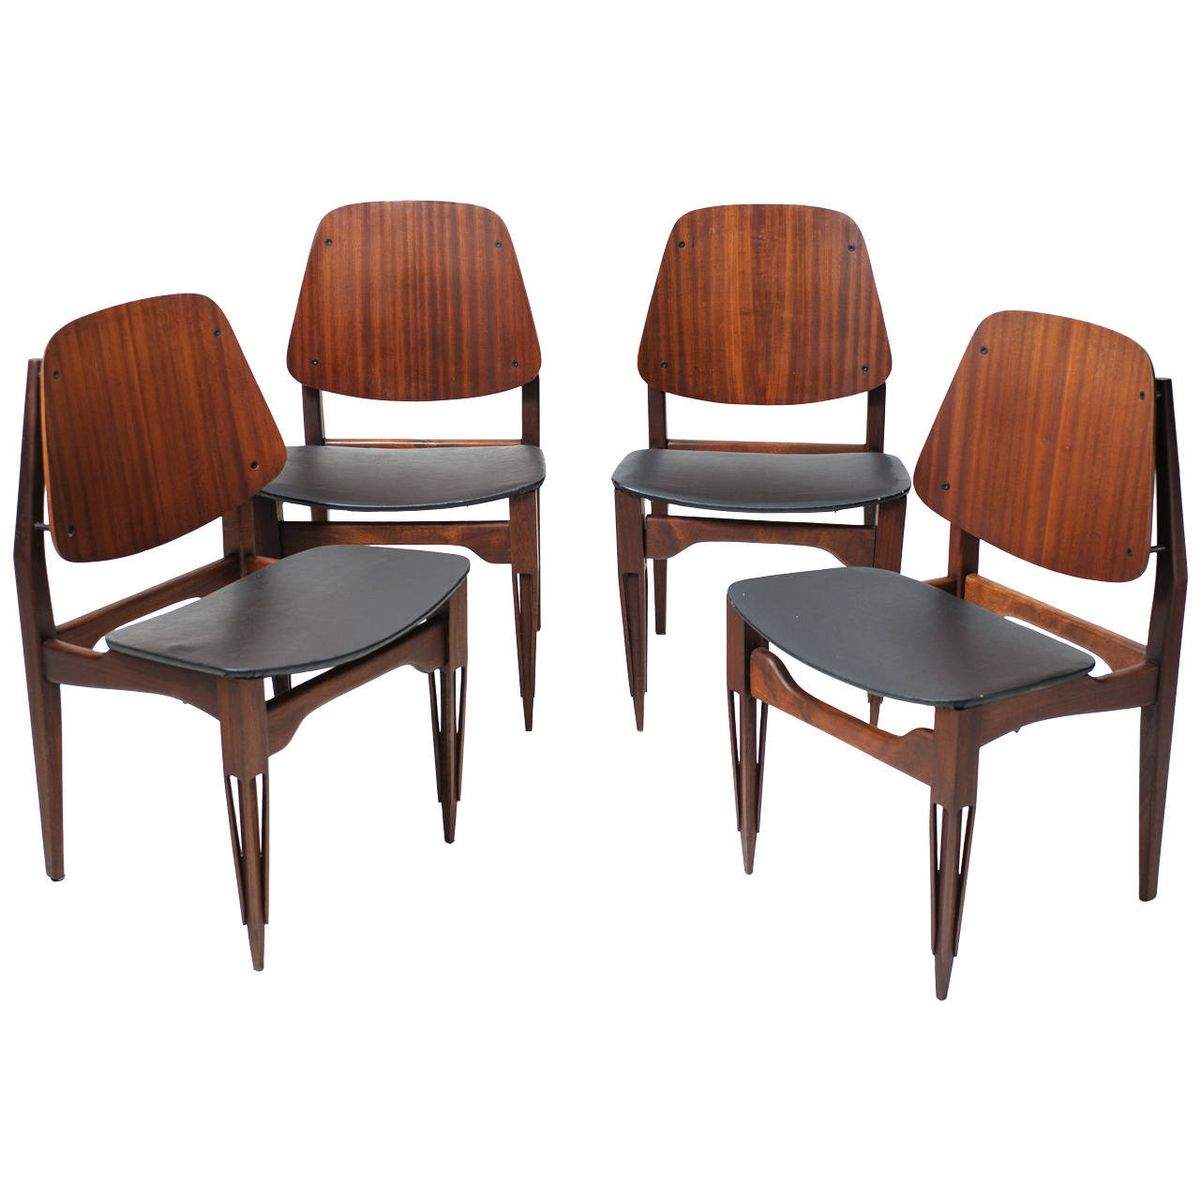 Very Impressive portraiture of Vinyl and Wood Chairs 1950s Set of 4 for sale at Pamono with #975534 color and 1200x1200 pixels